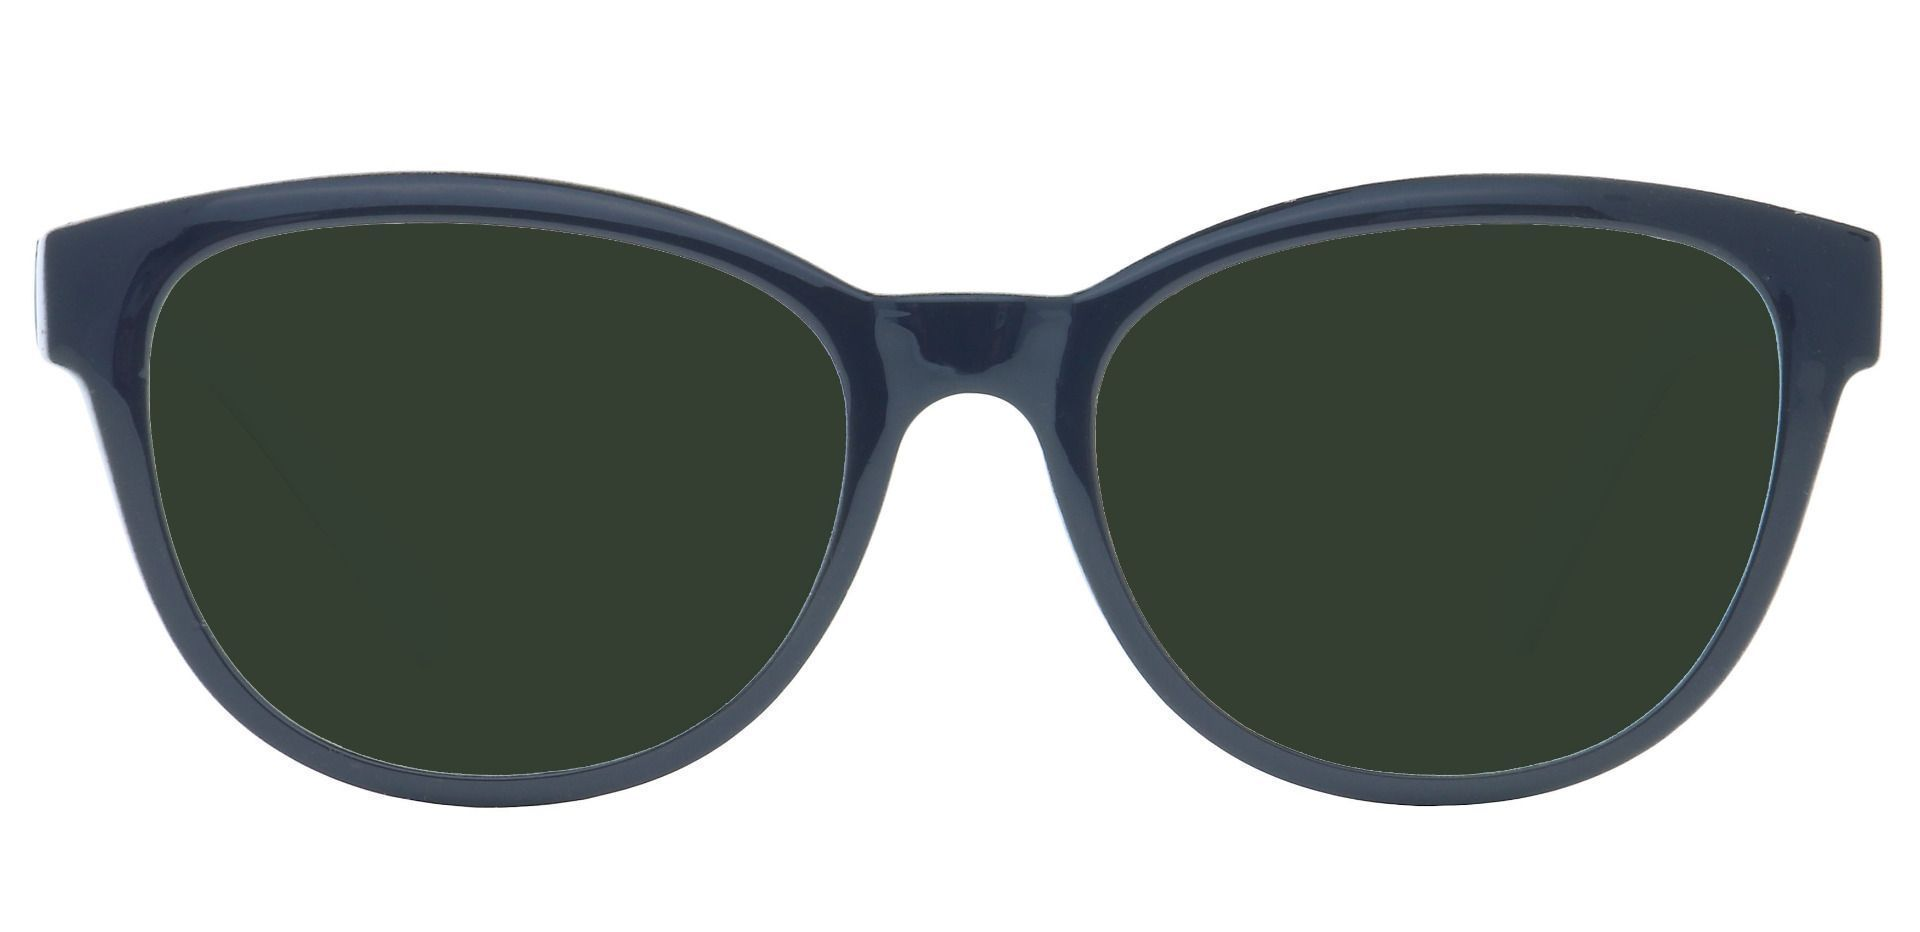 Amore Cat-Eye Prescription Sunglasses - Black Frame With Green Lenses